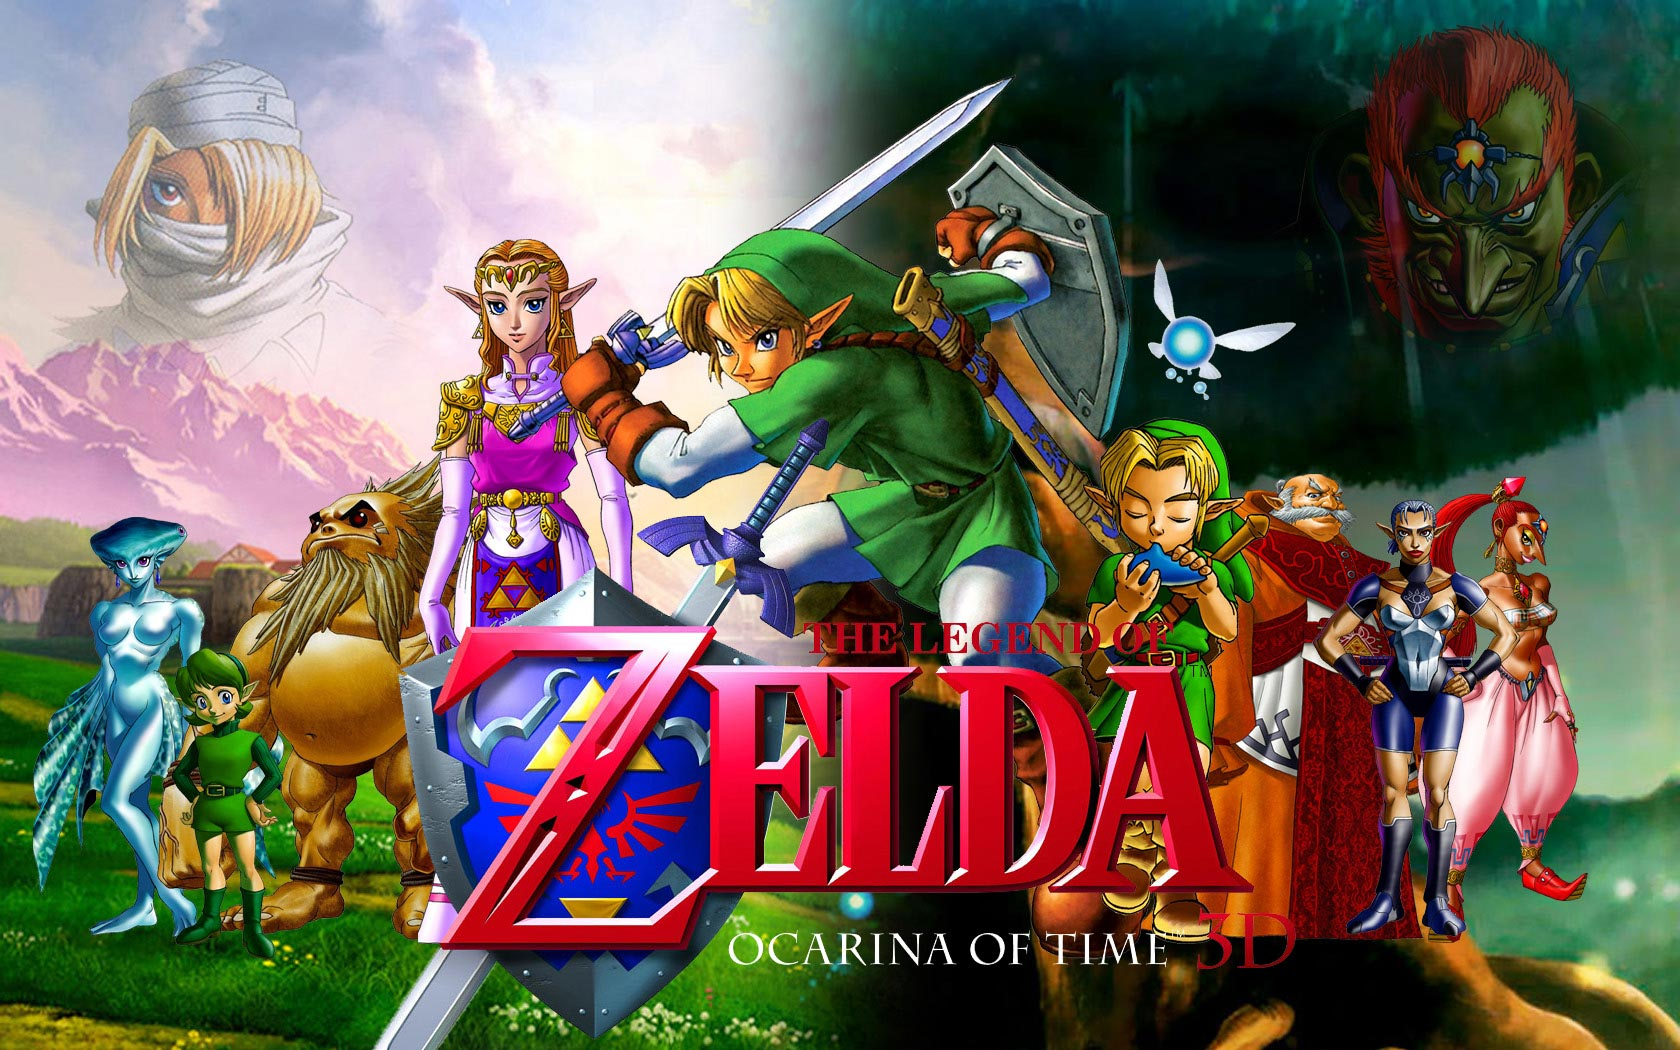 Wii U Screen Savers : The legend of zelda ocarina time wallpaper and